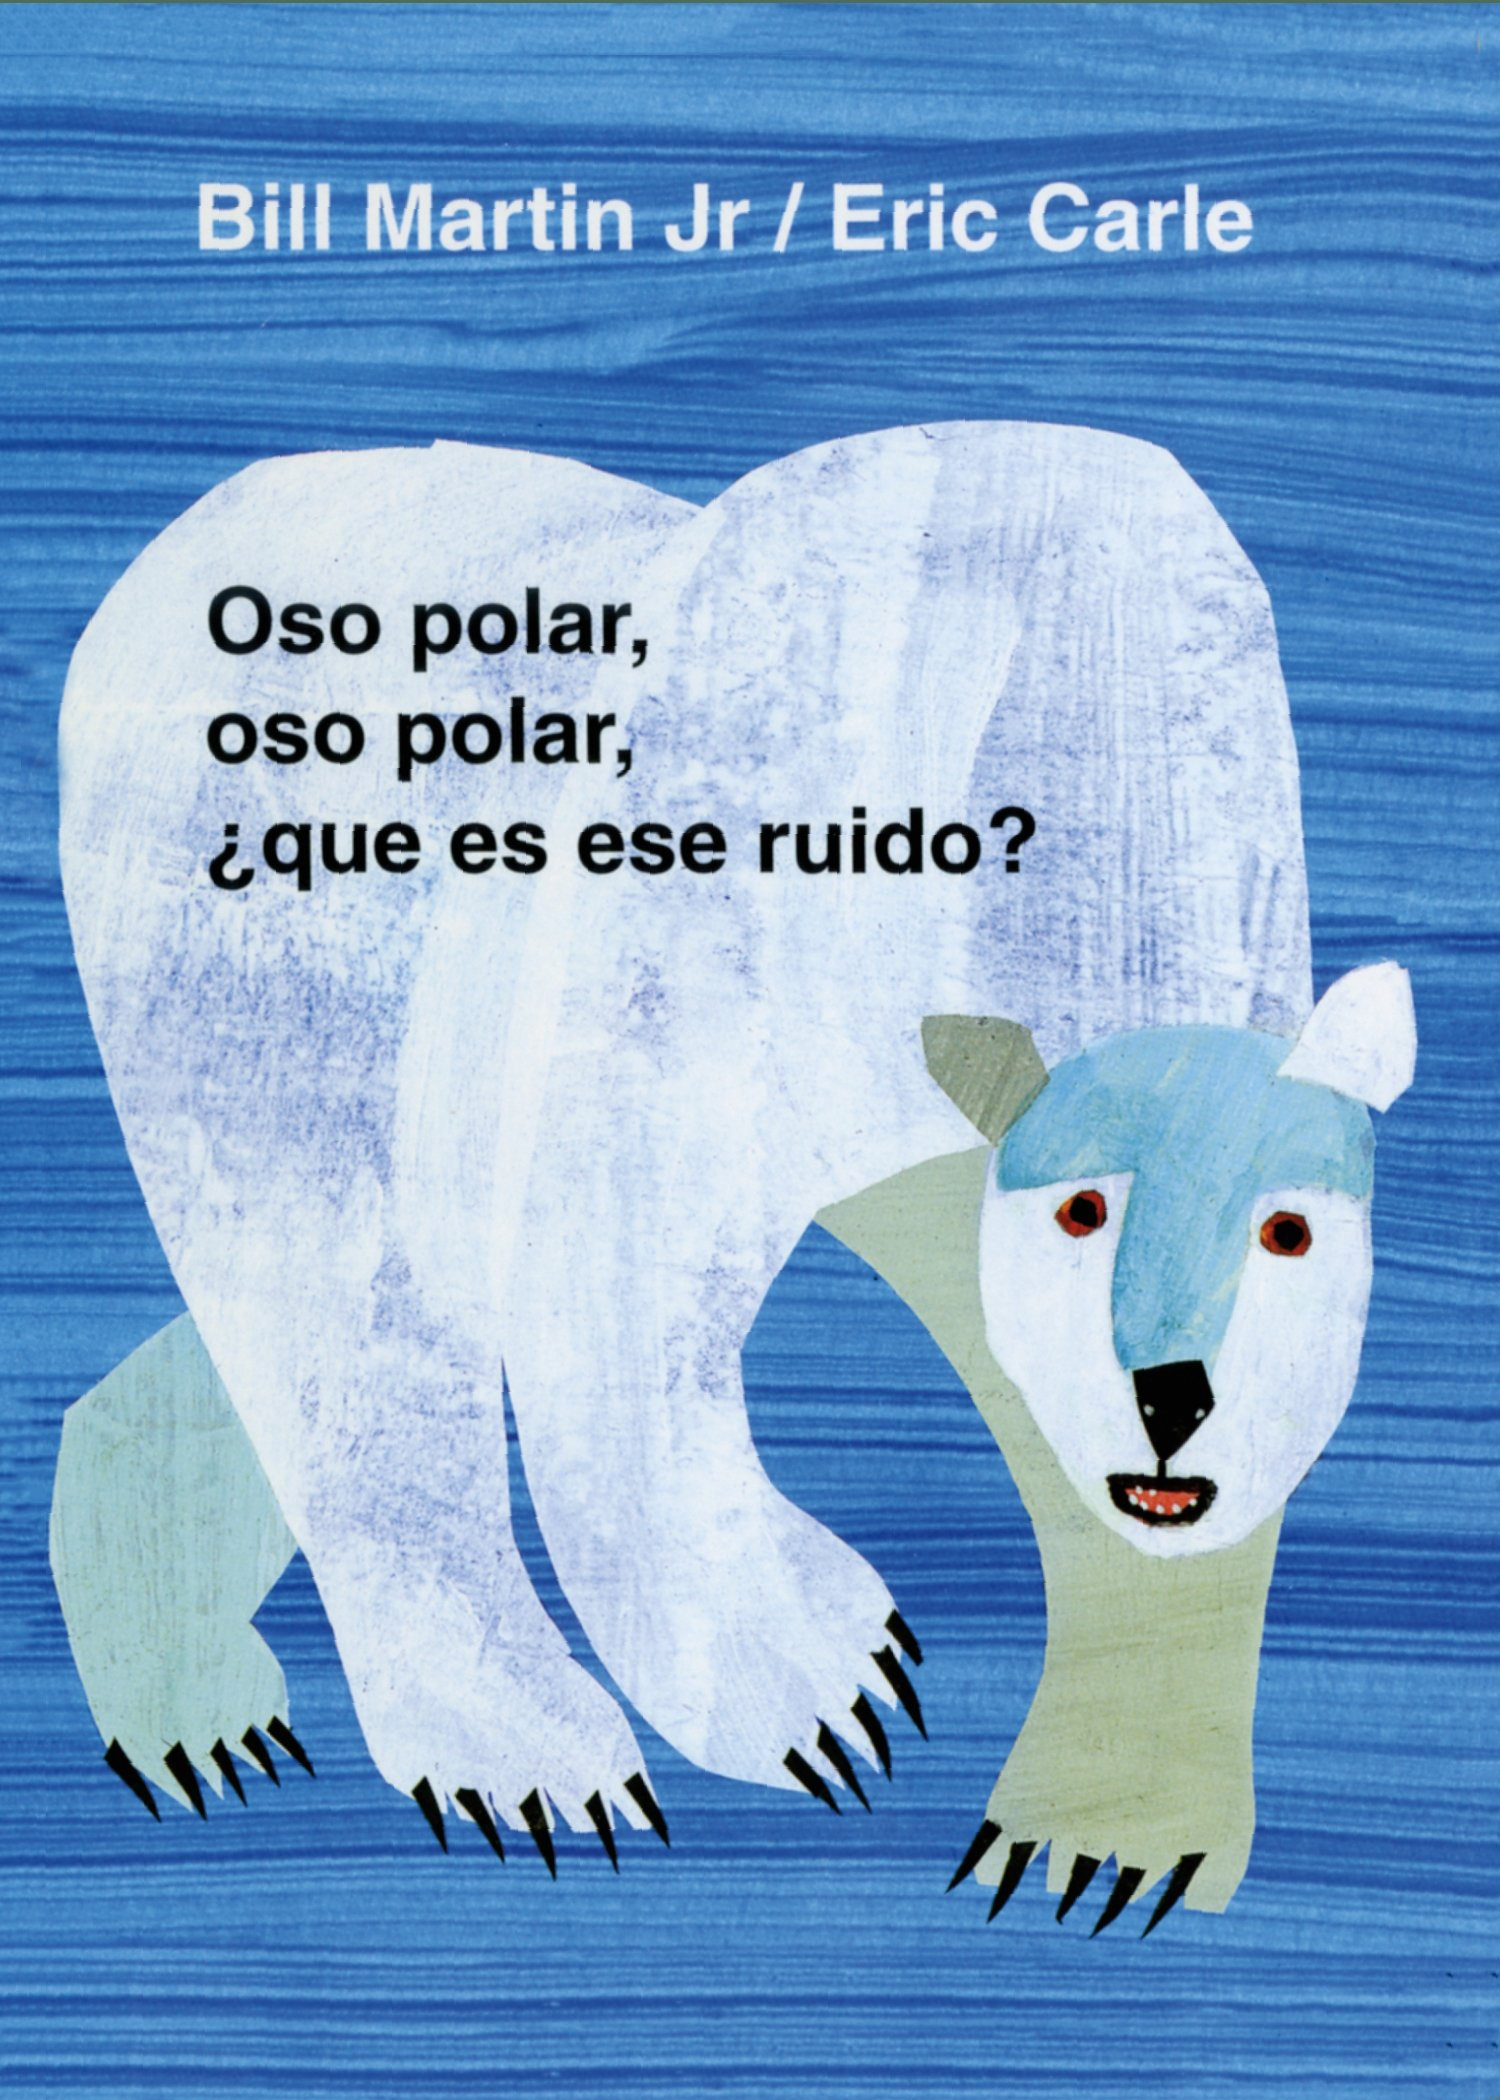 Oso Polar, Oso Polar, Que Es Ese Ruido? = Polar Bear, Polar Bear, What Do You Hear? (Brown Bear and Friends)